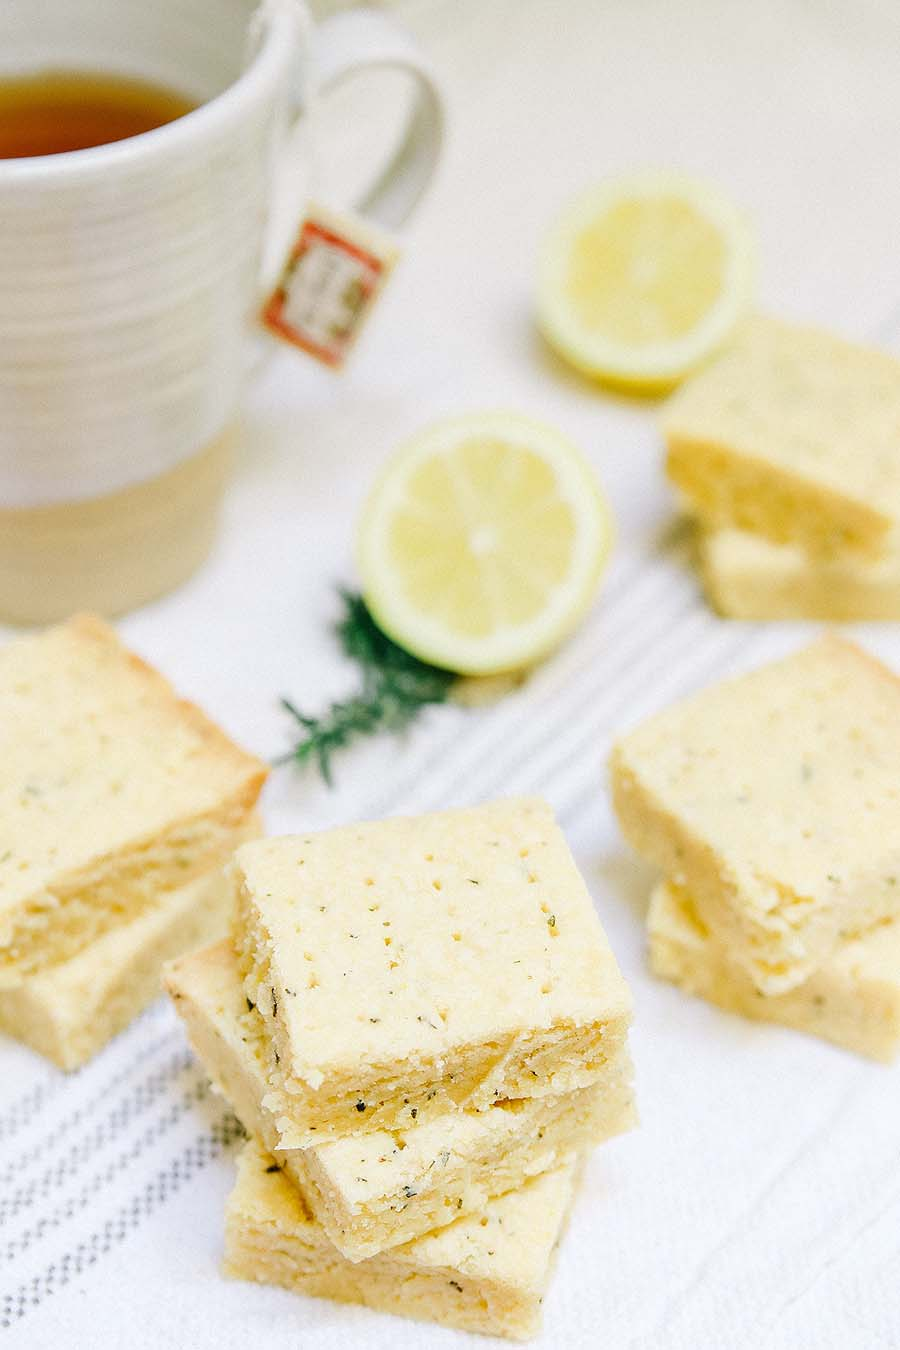 rosemary shortbread bars